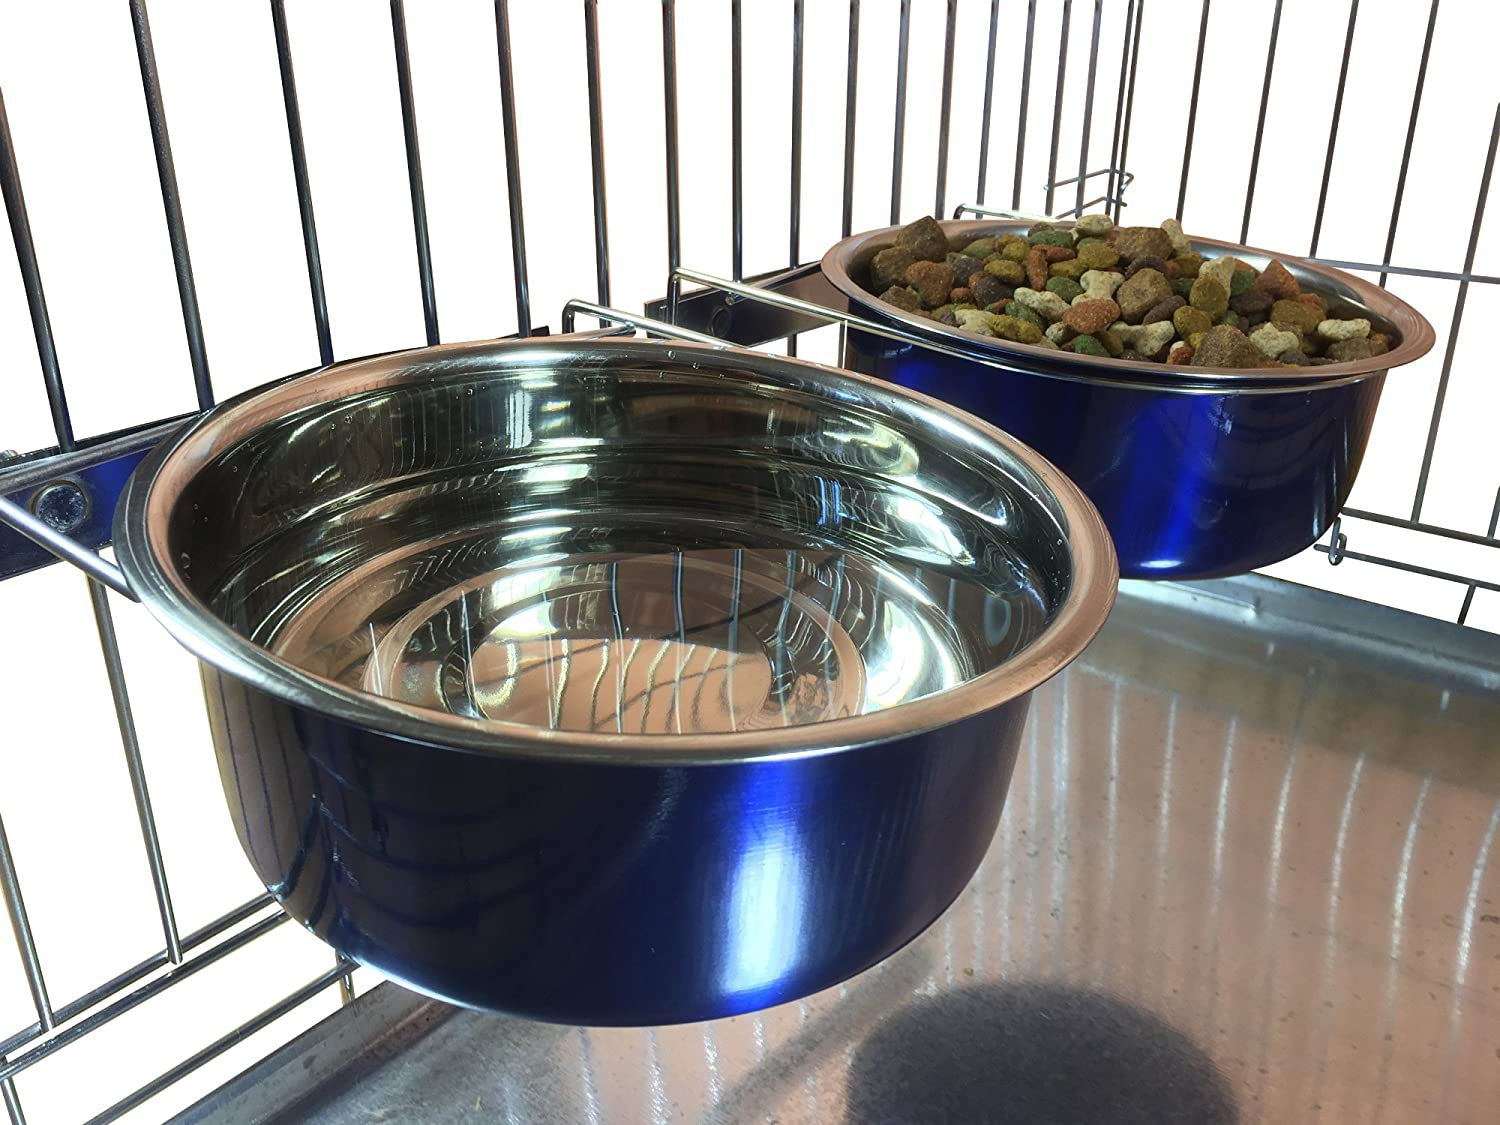 0.6 Litre Ellie-Bo Pair of Dog Bowls for Crates//Cages or Pens Small Red